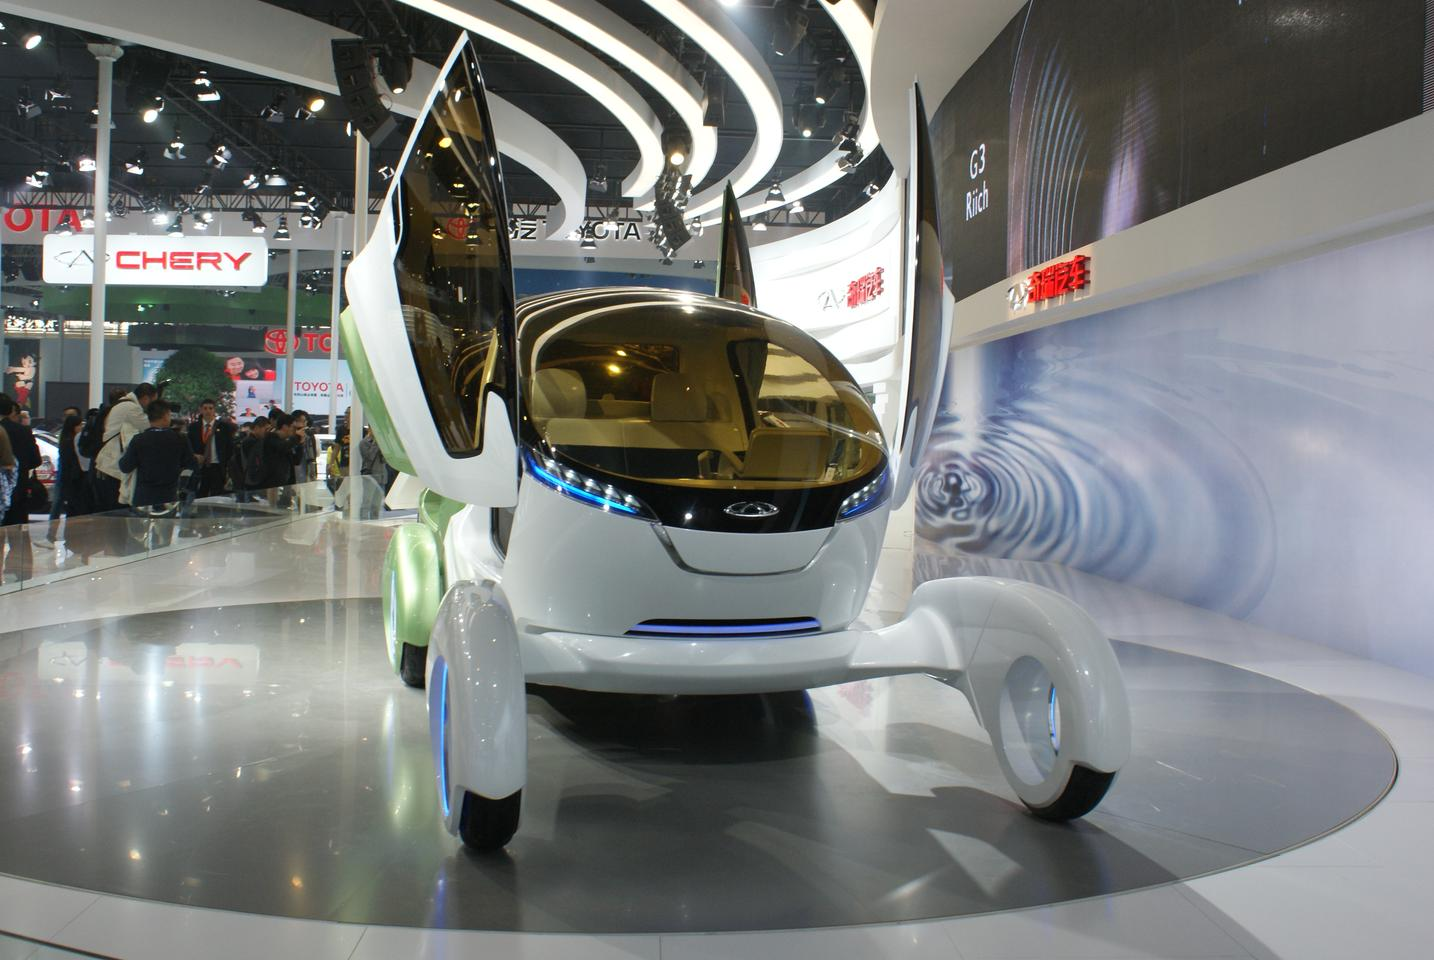 Chery's Ant Concept at Auto China in Shanghai